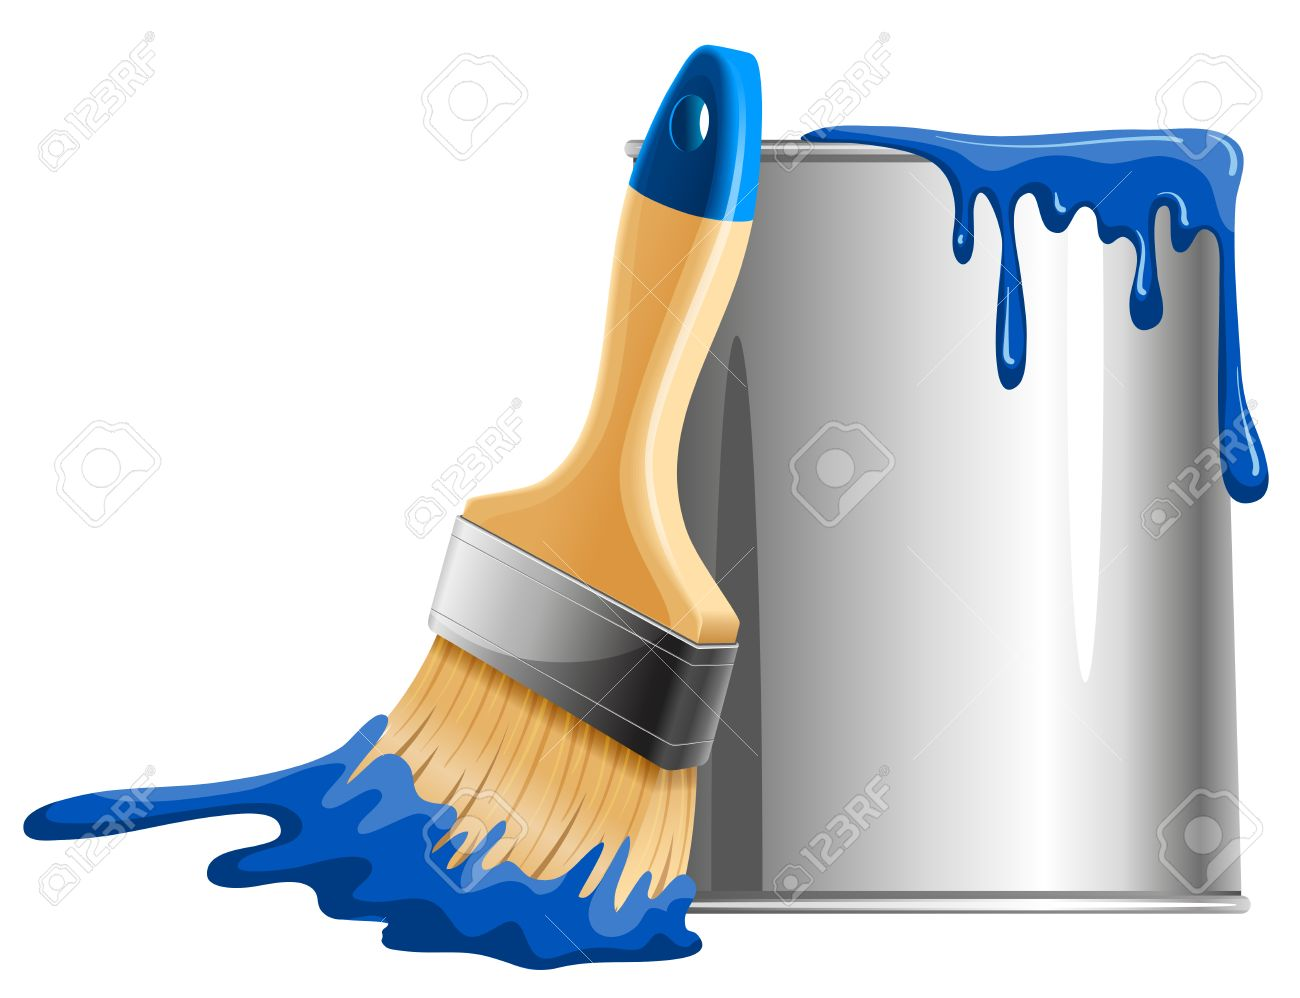 Bucket of blue paint and brush. Vector illustration. - 55910497